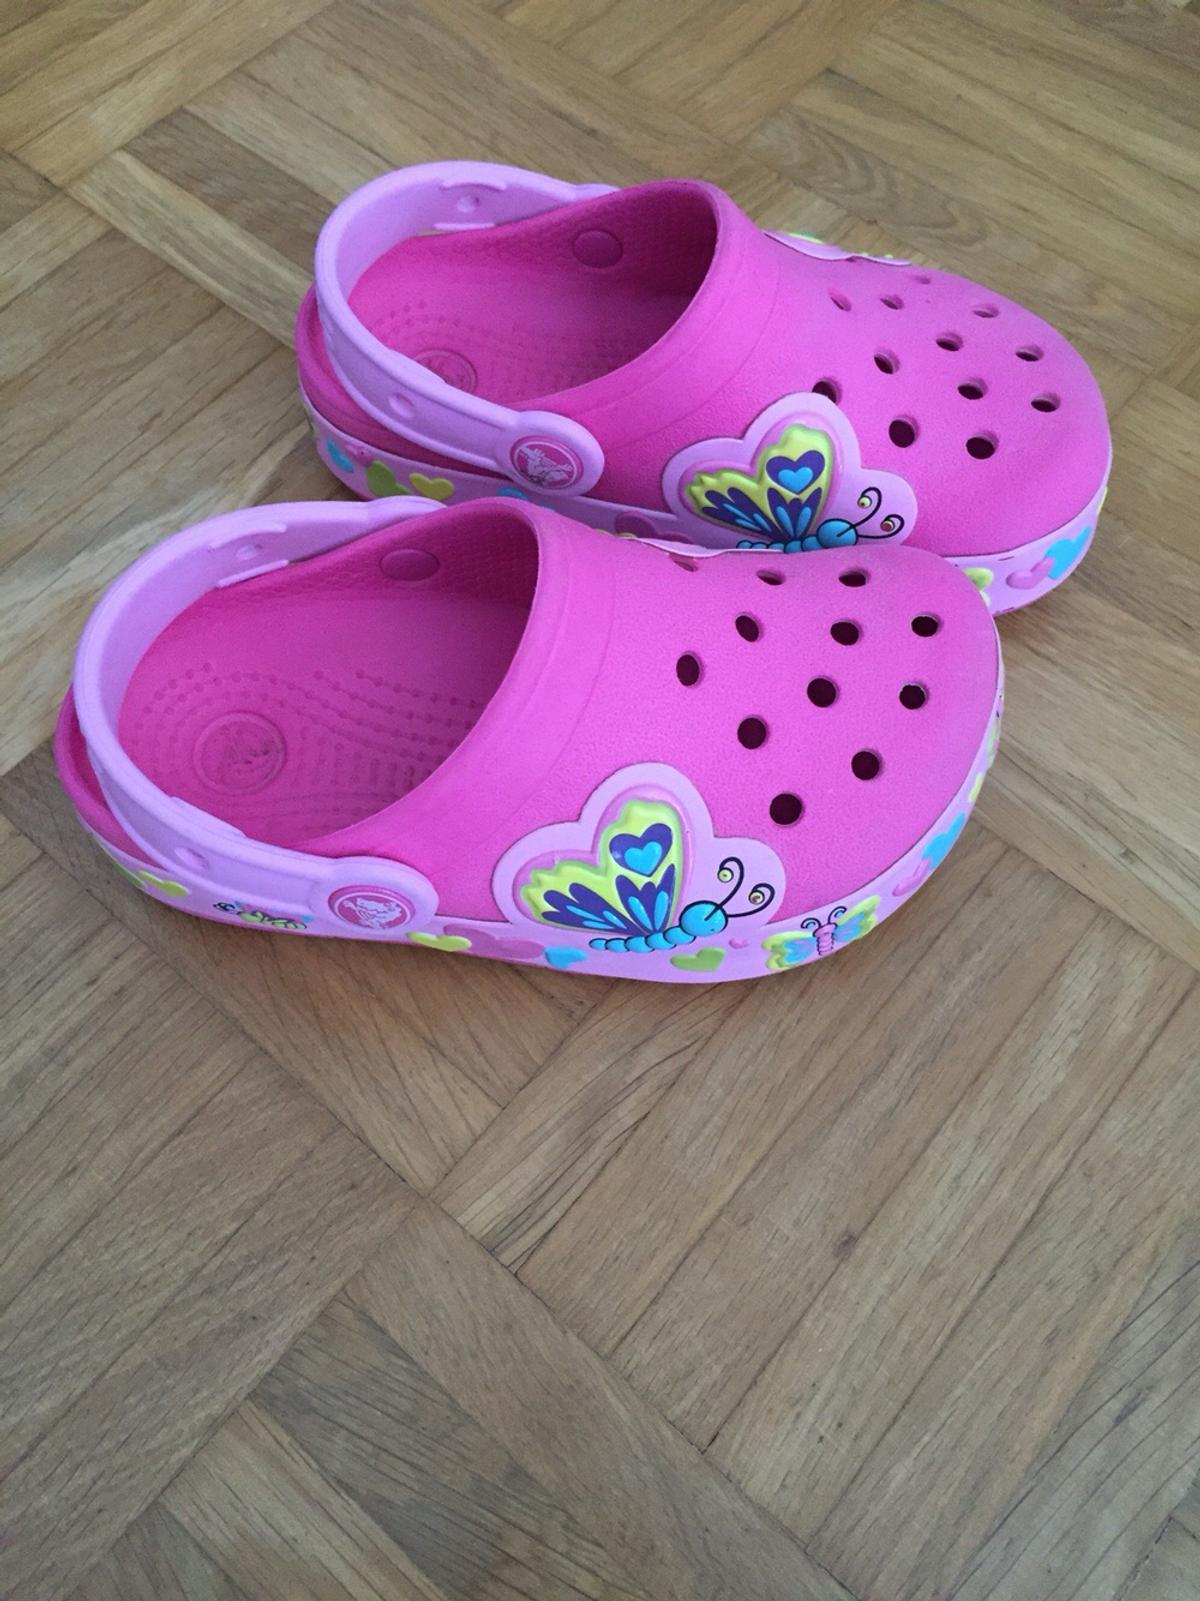 Pink For 2829 In München 81247 Schmetterling Crocs Blinkie HW2YEe9IDb